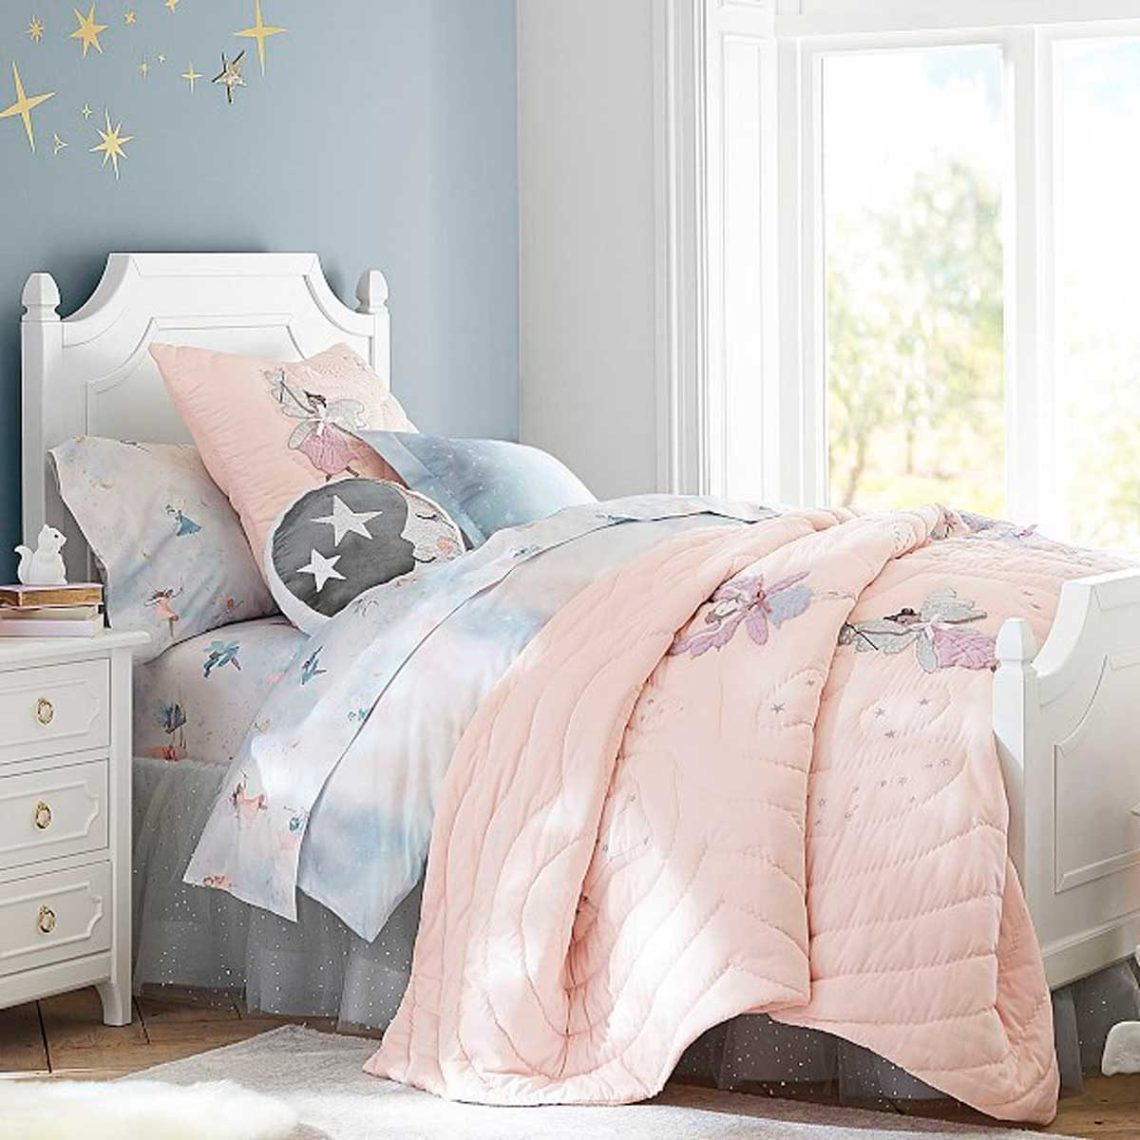 10 Ideas For Painting A Girl S Bedroom The Family Handyman